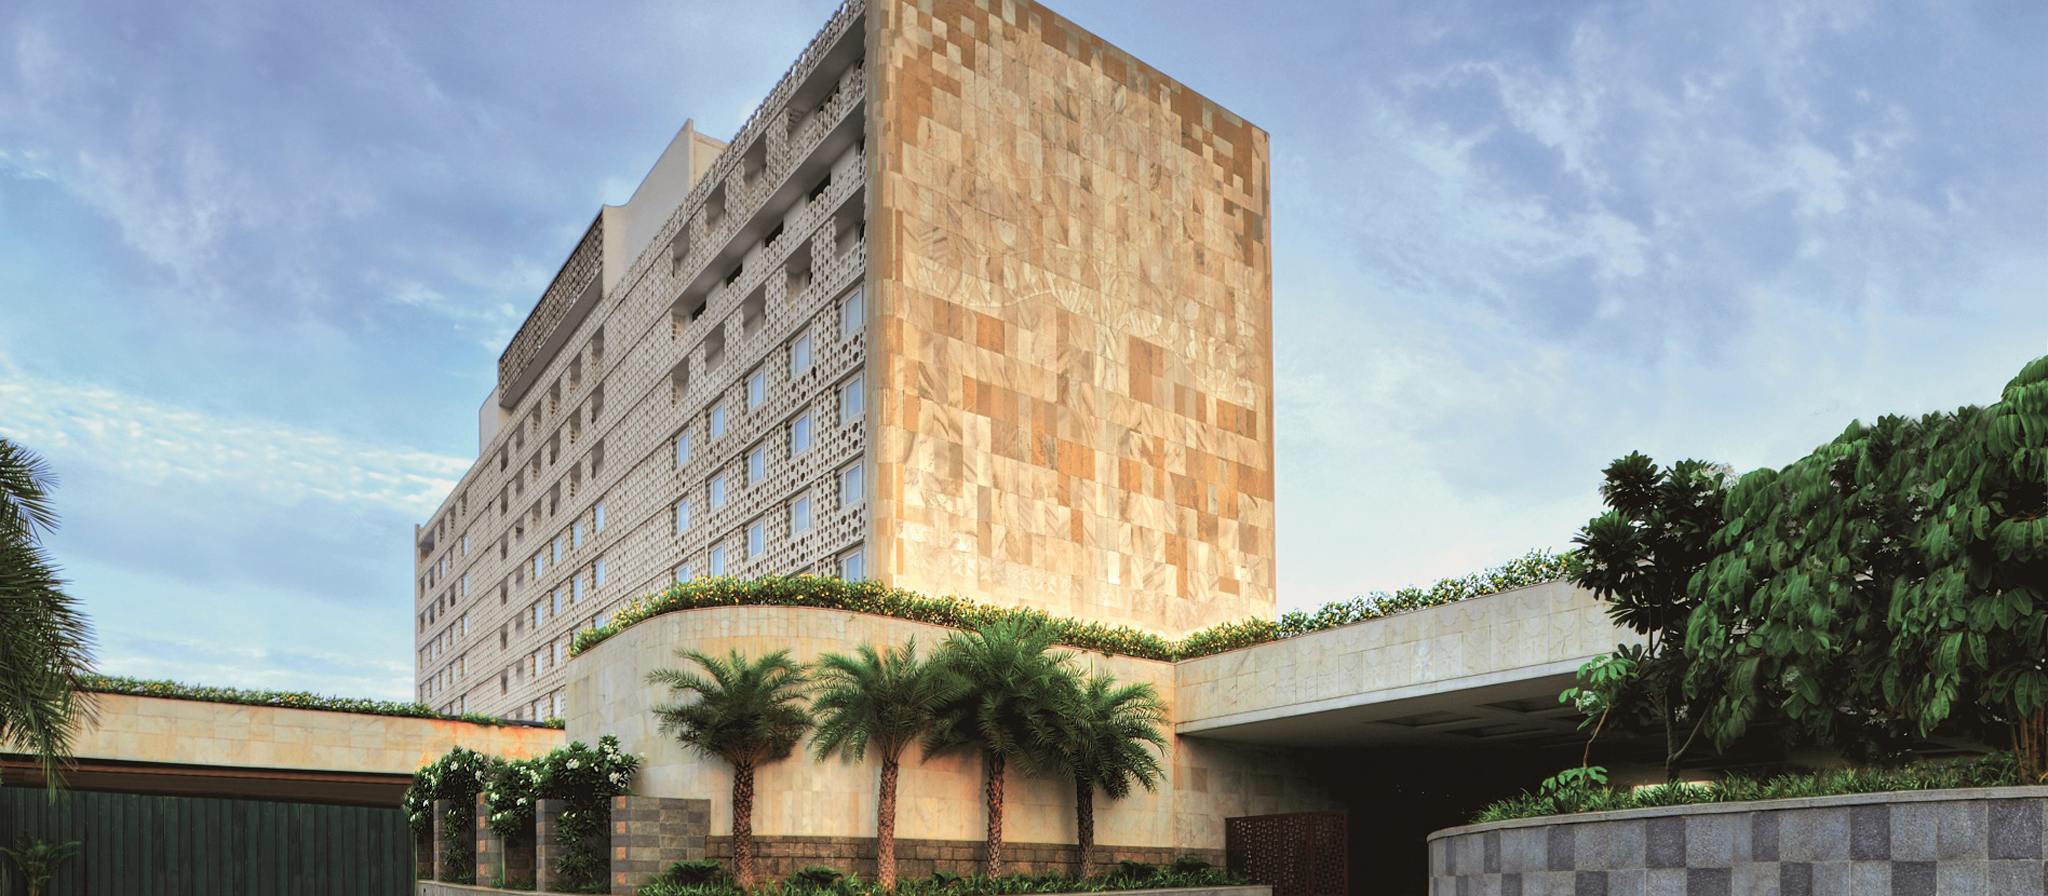 Hotel Accommodations In Chennai - Suites & Rooms - Taj Club